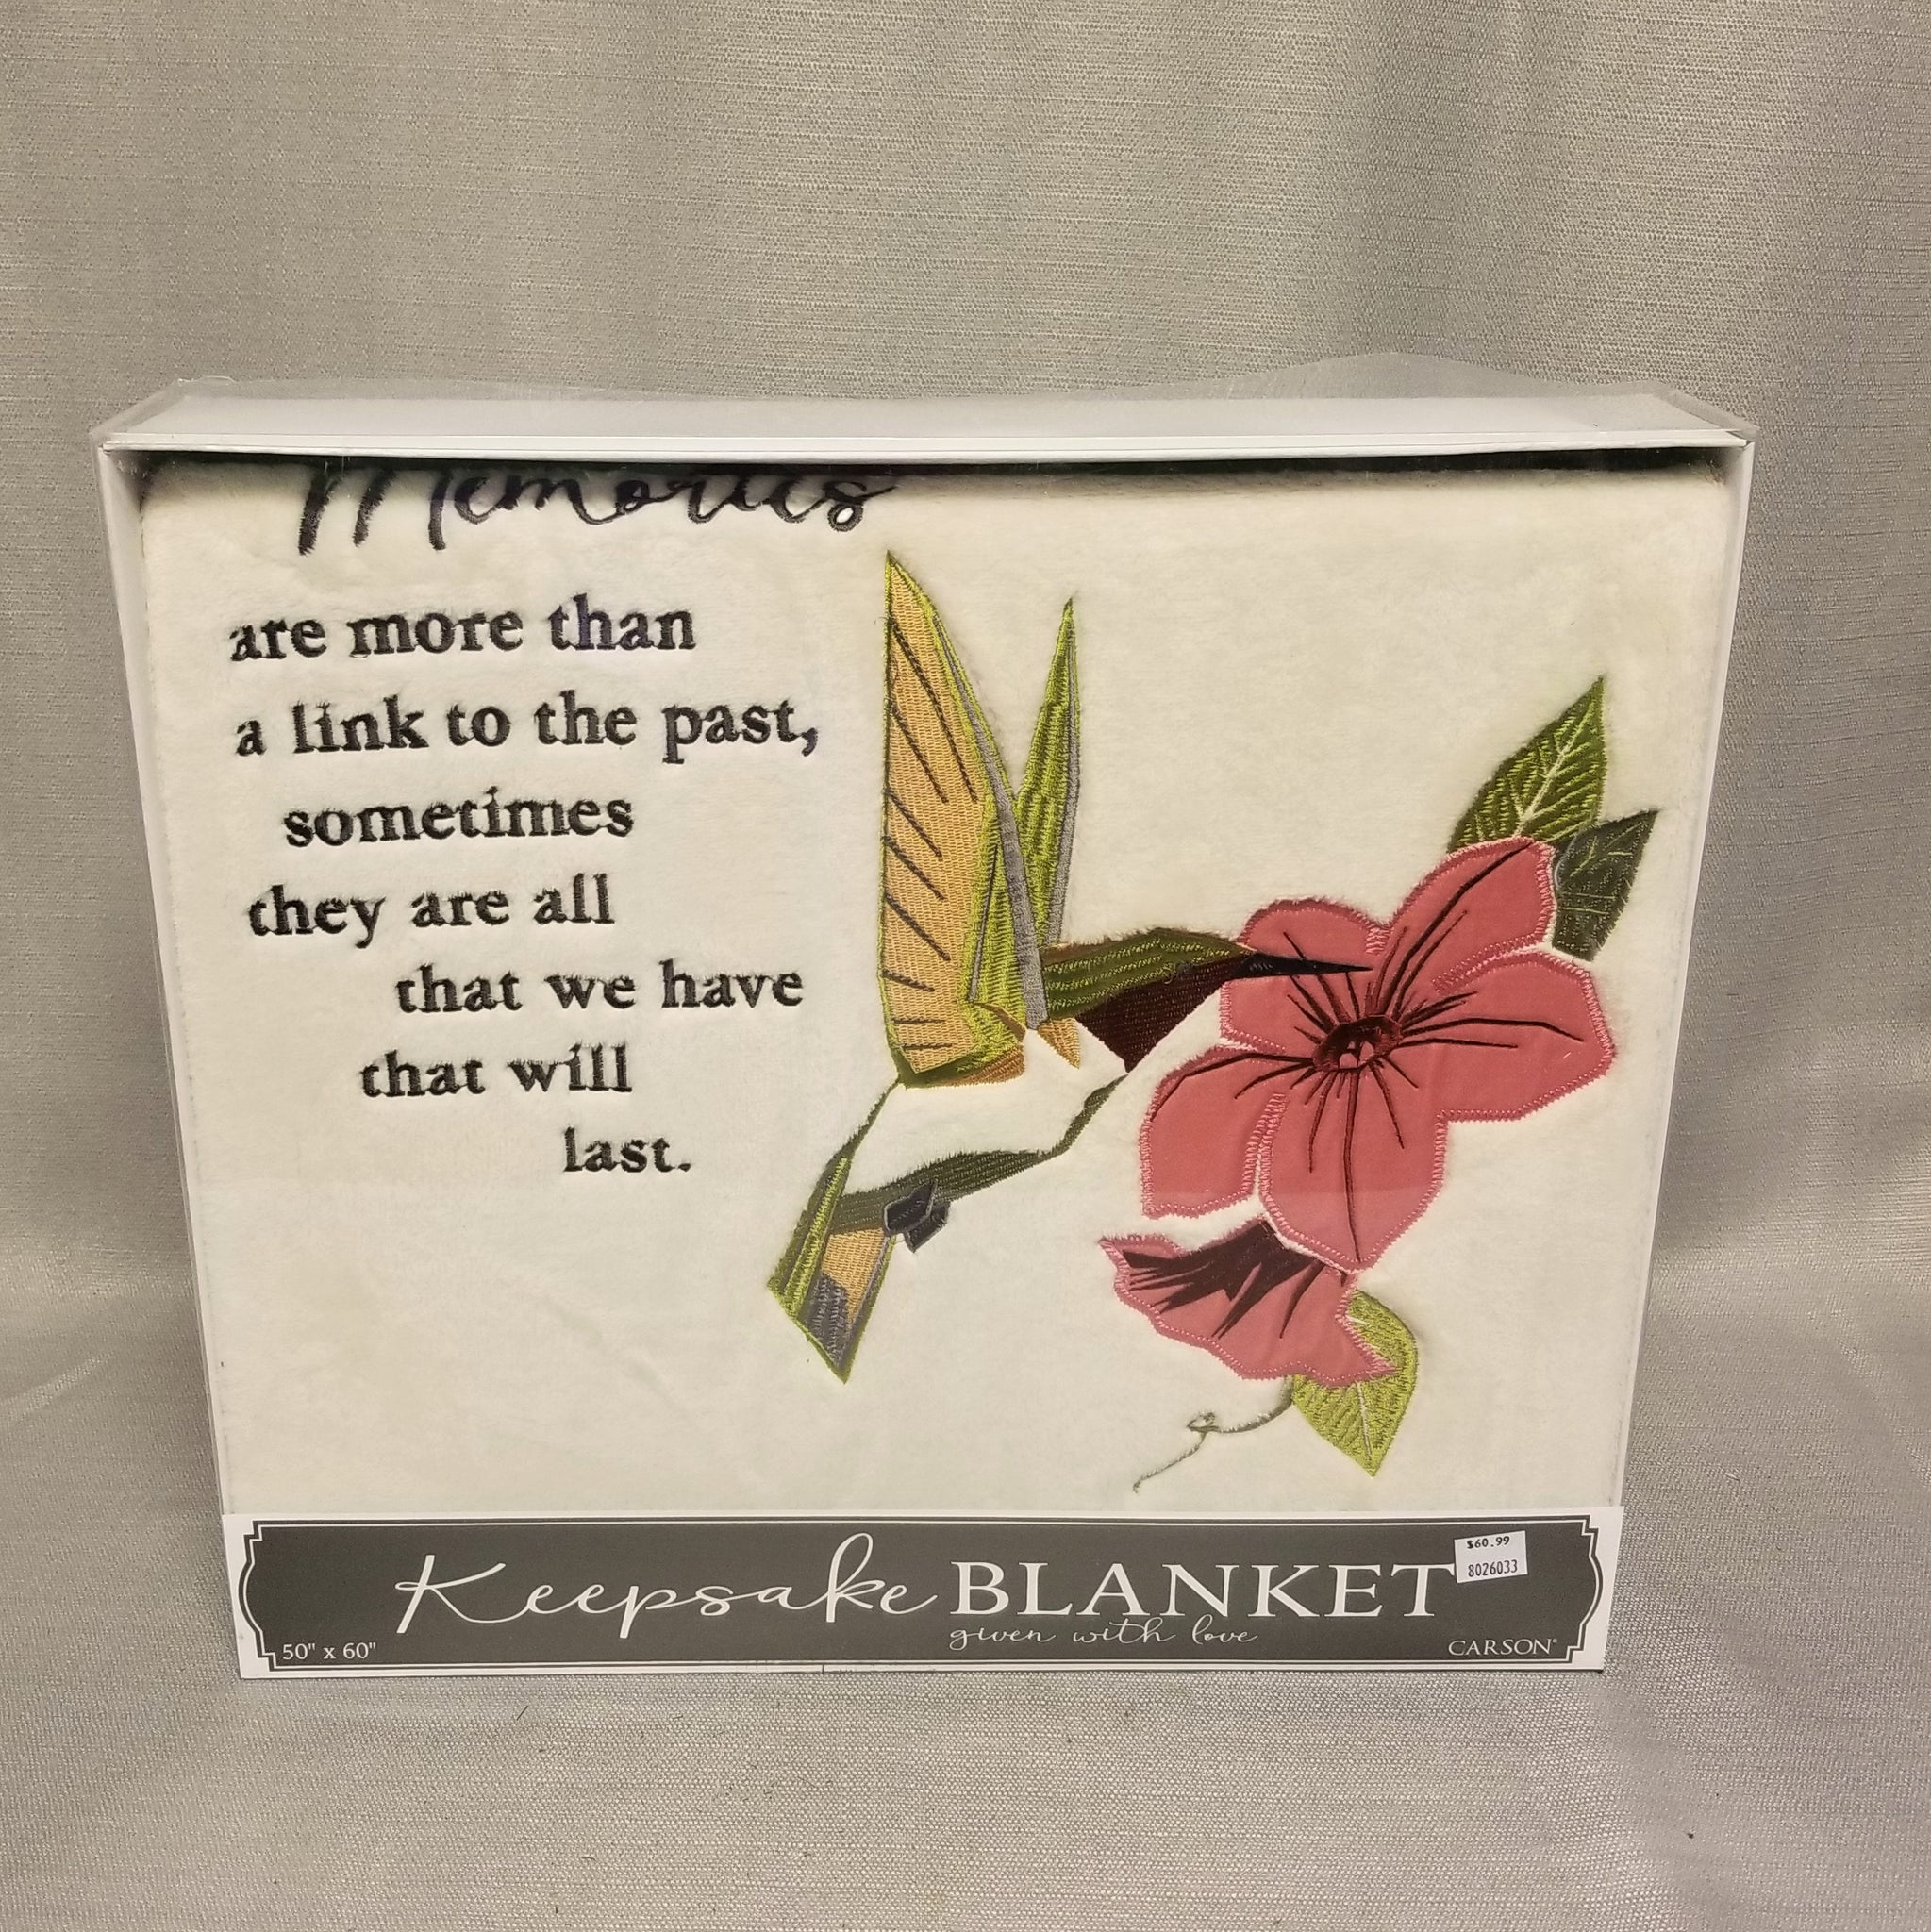 Keepsake Blanket - Memories